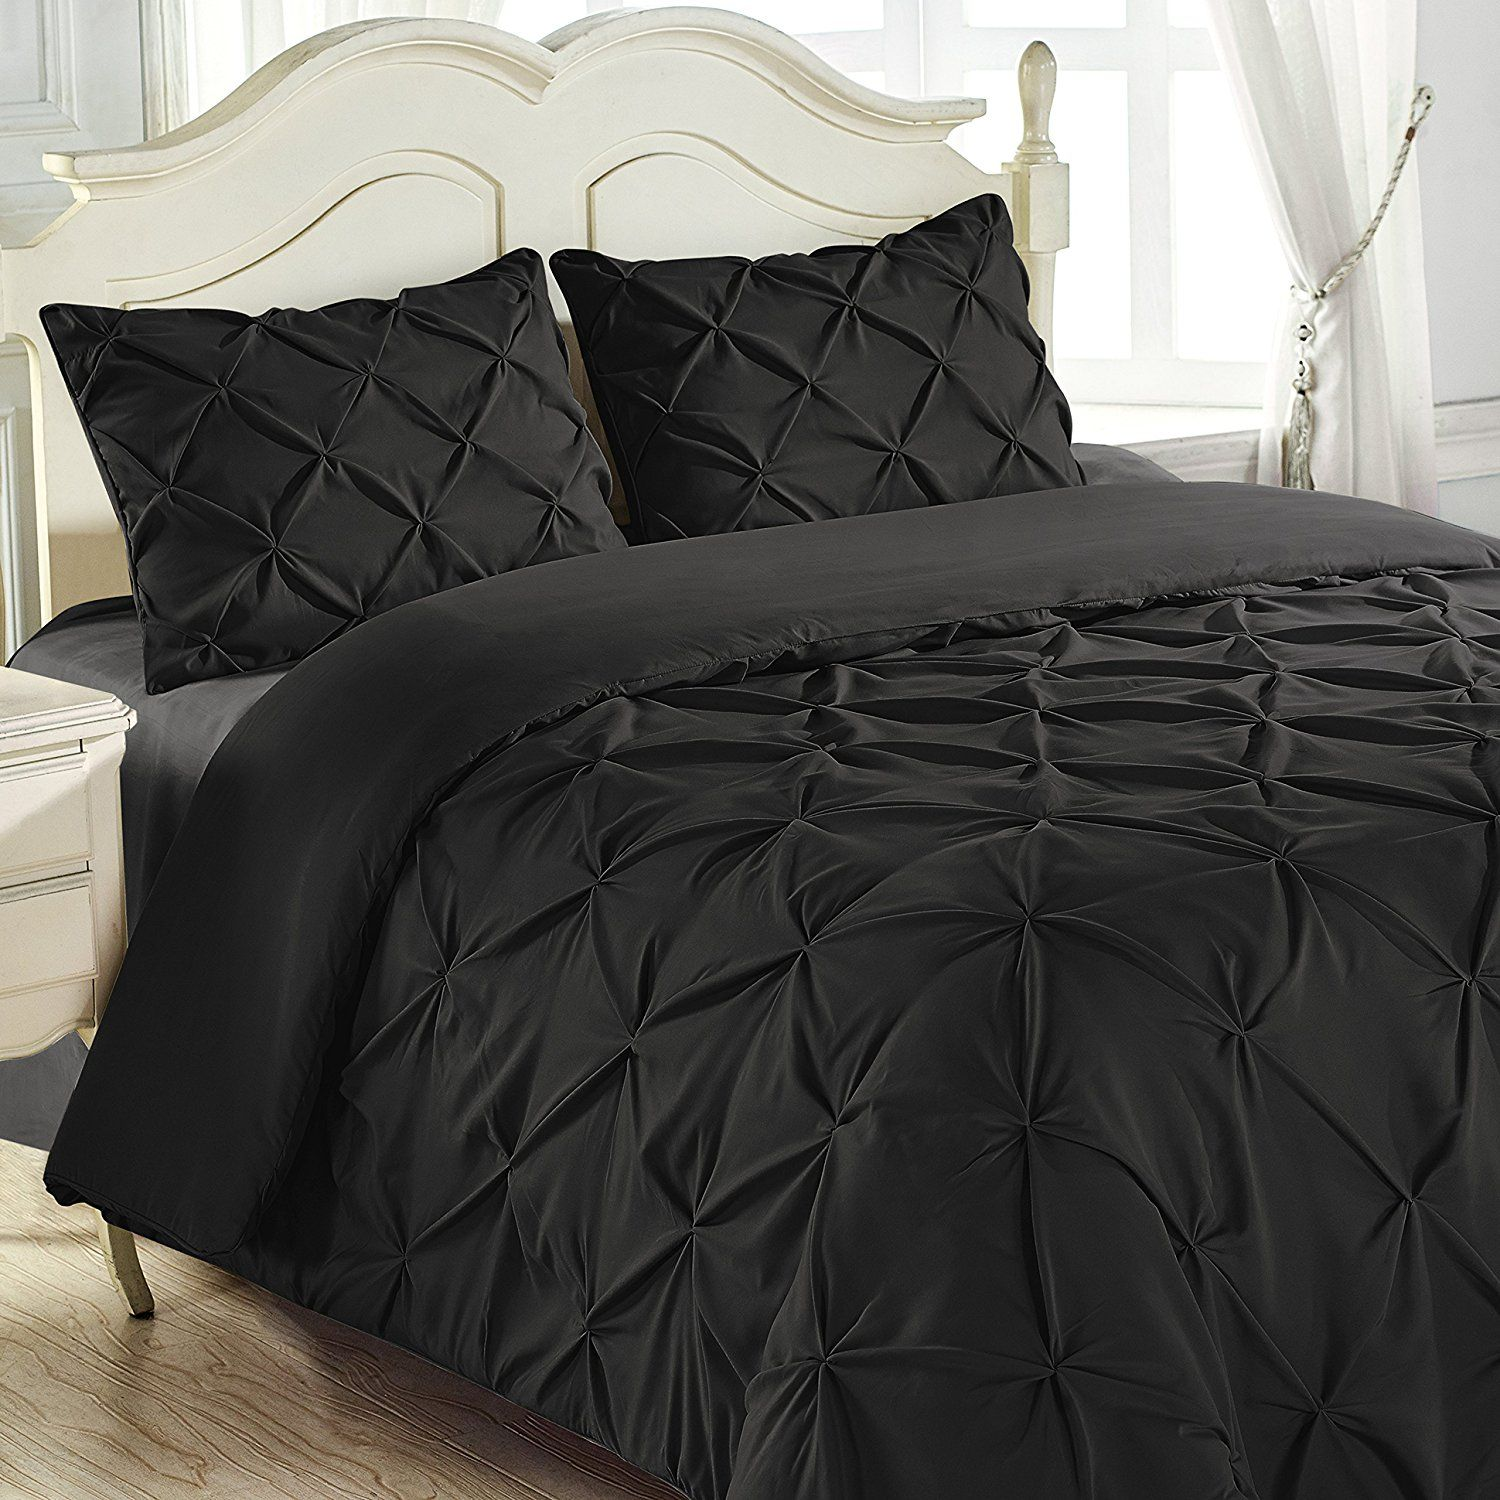 stitch set and king black pinch double queen pleat bedrooms reinforced piece pin decorating comforter home